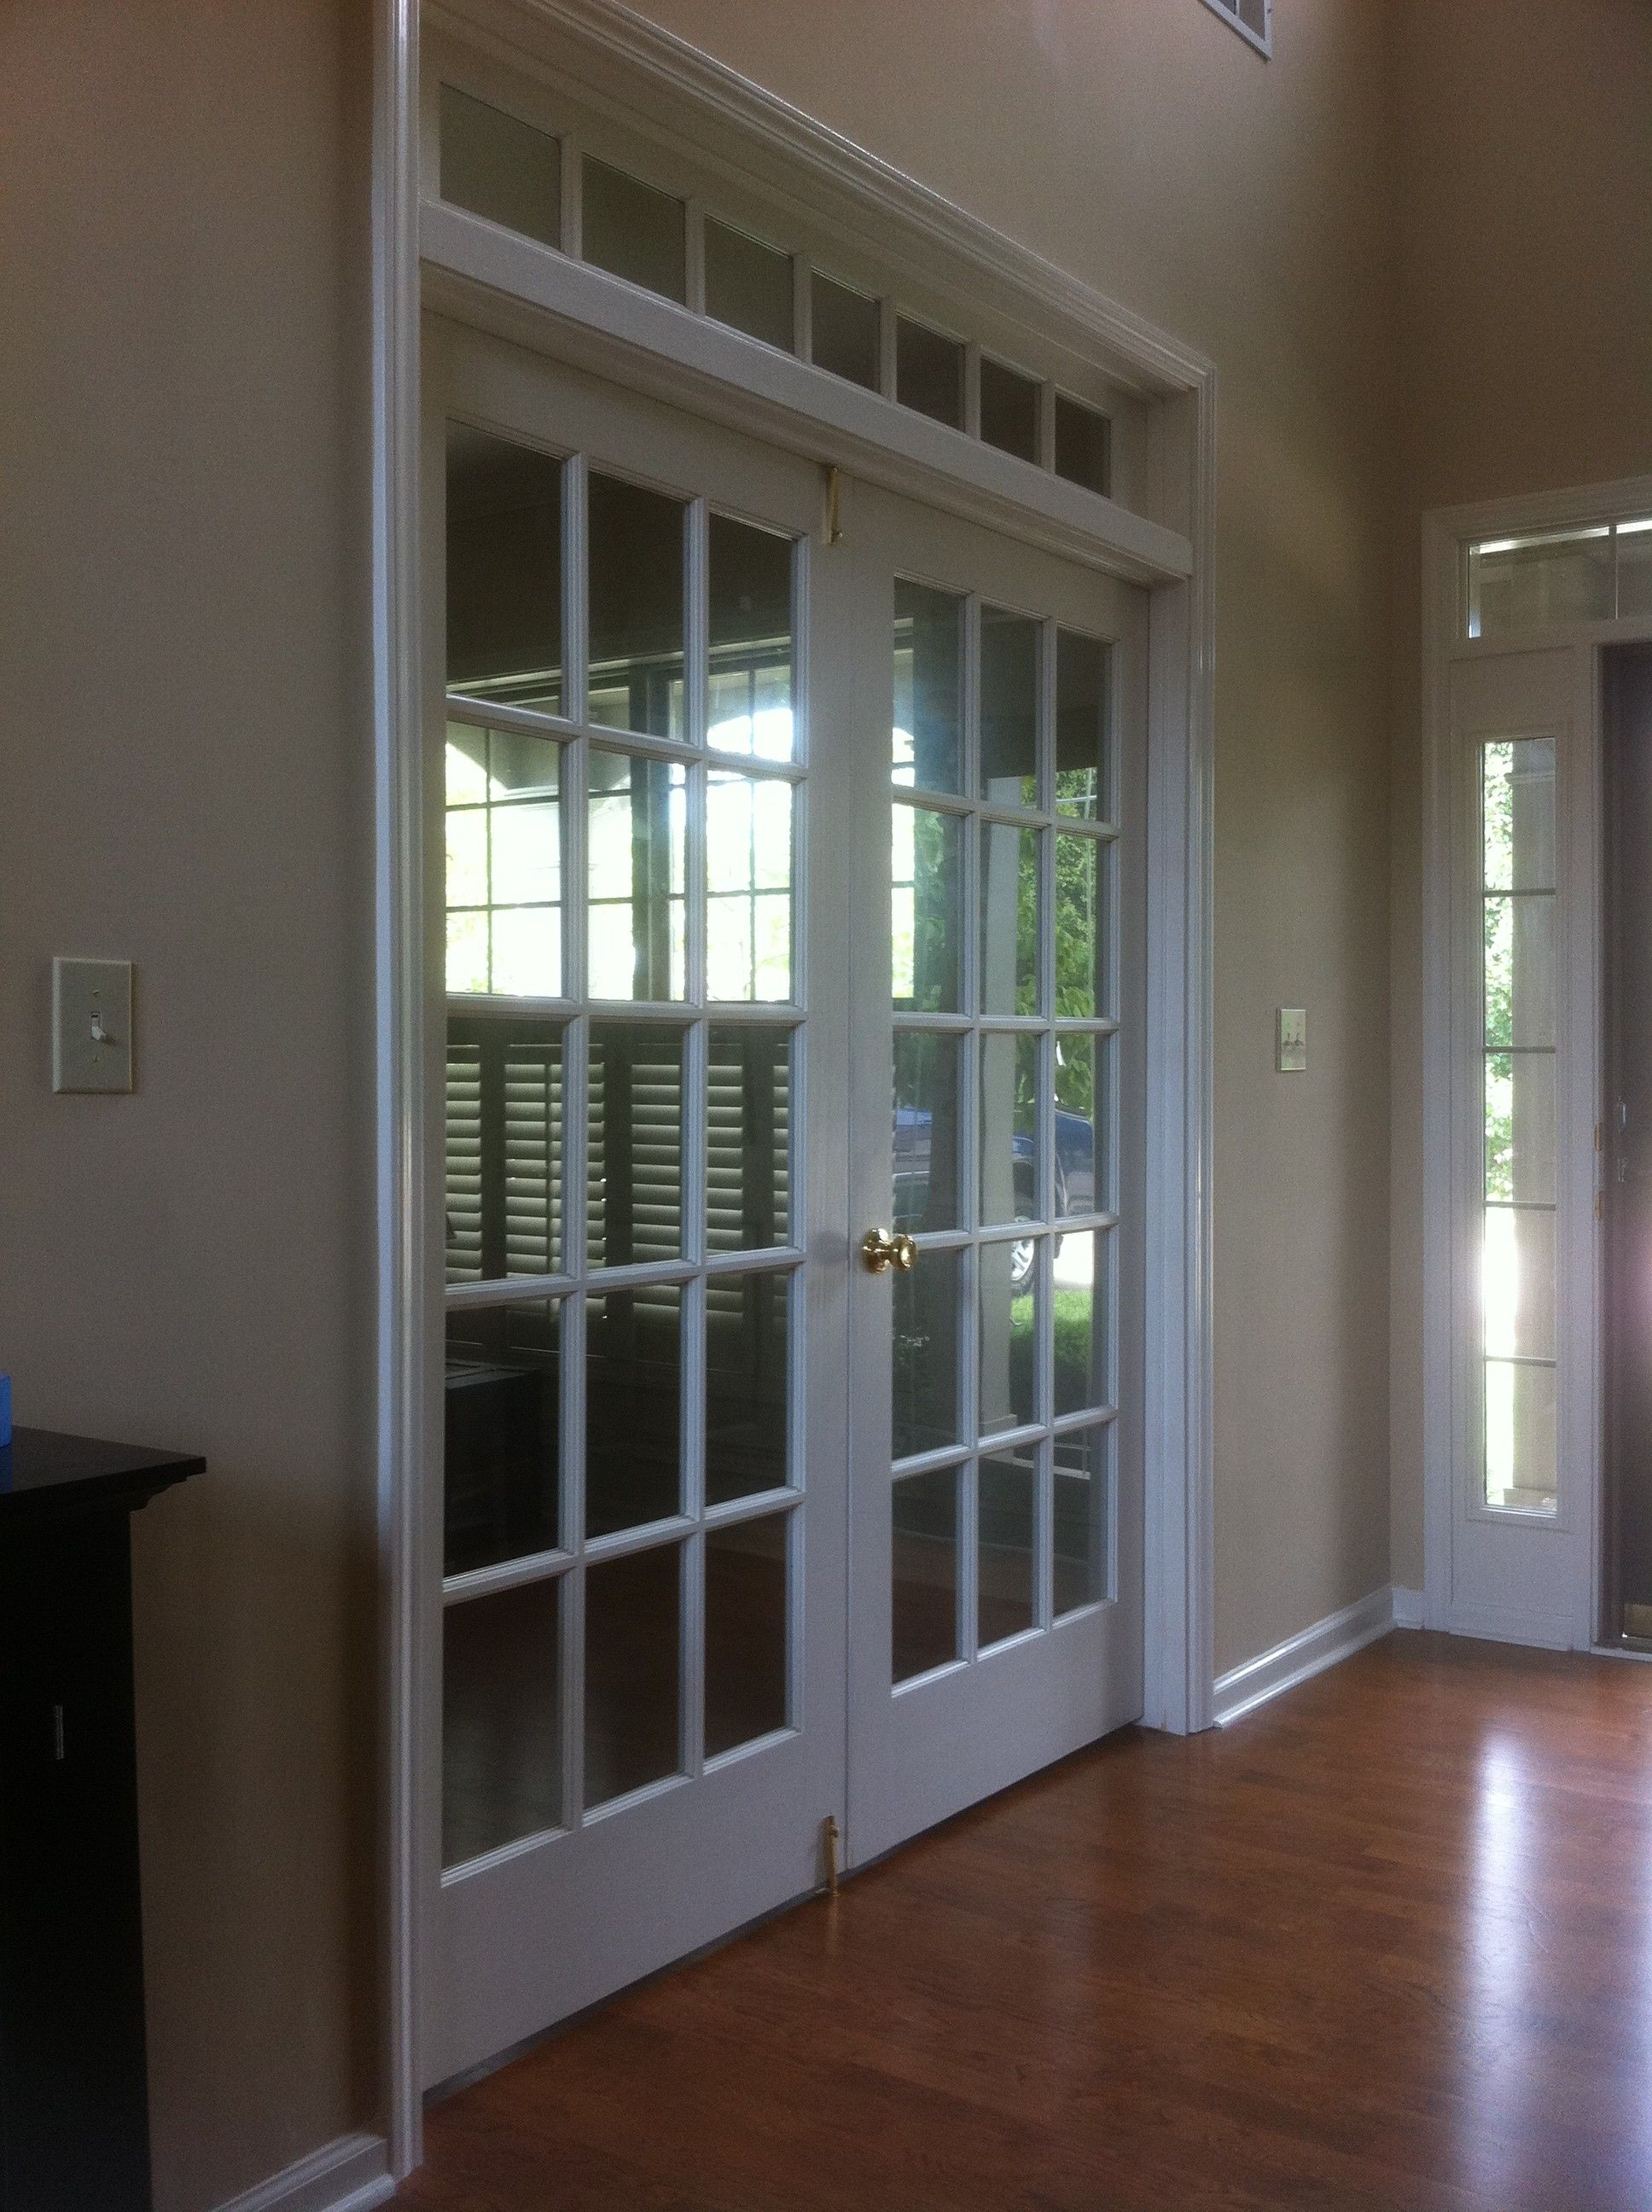 Home Office French Doors Near Entry This Is Pretty Much Exactly